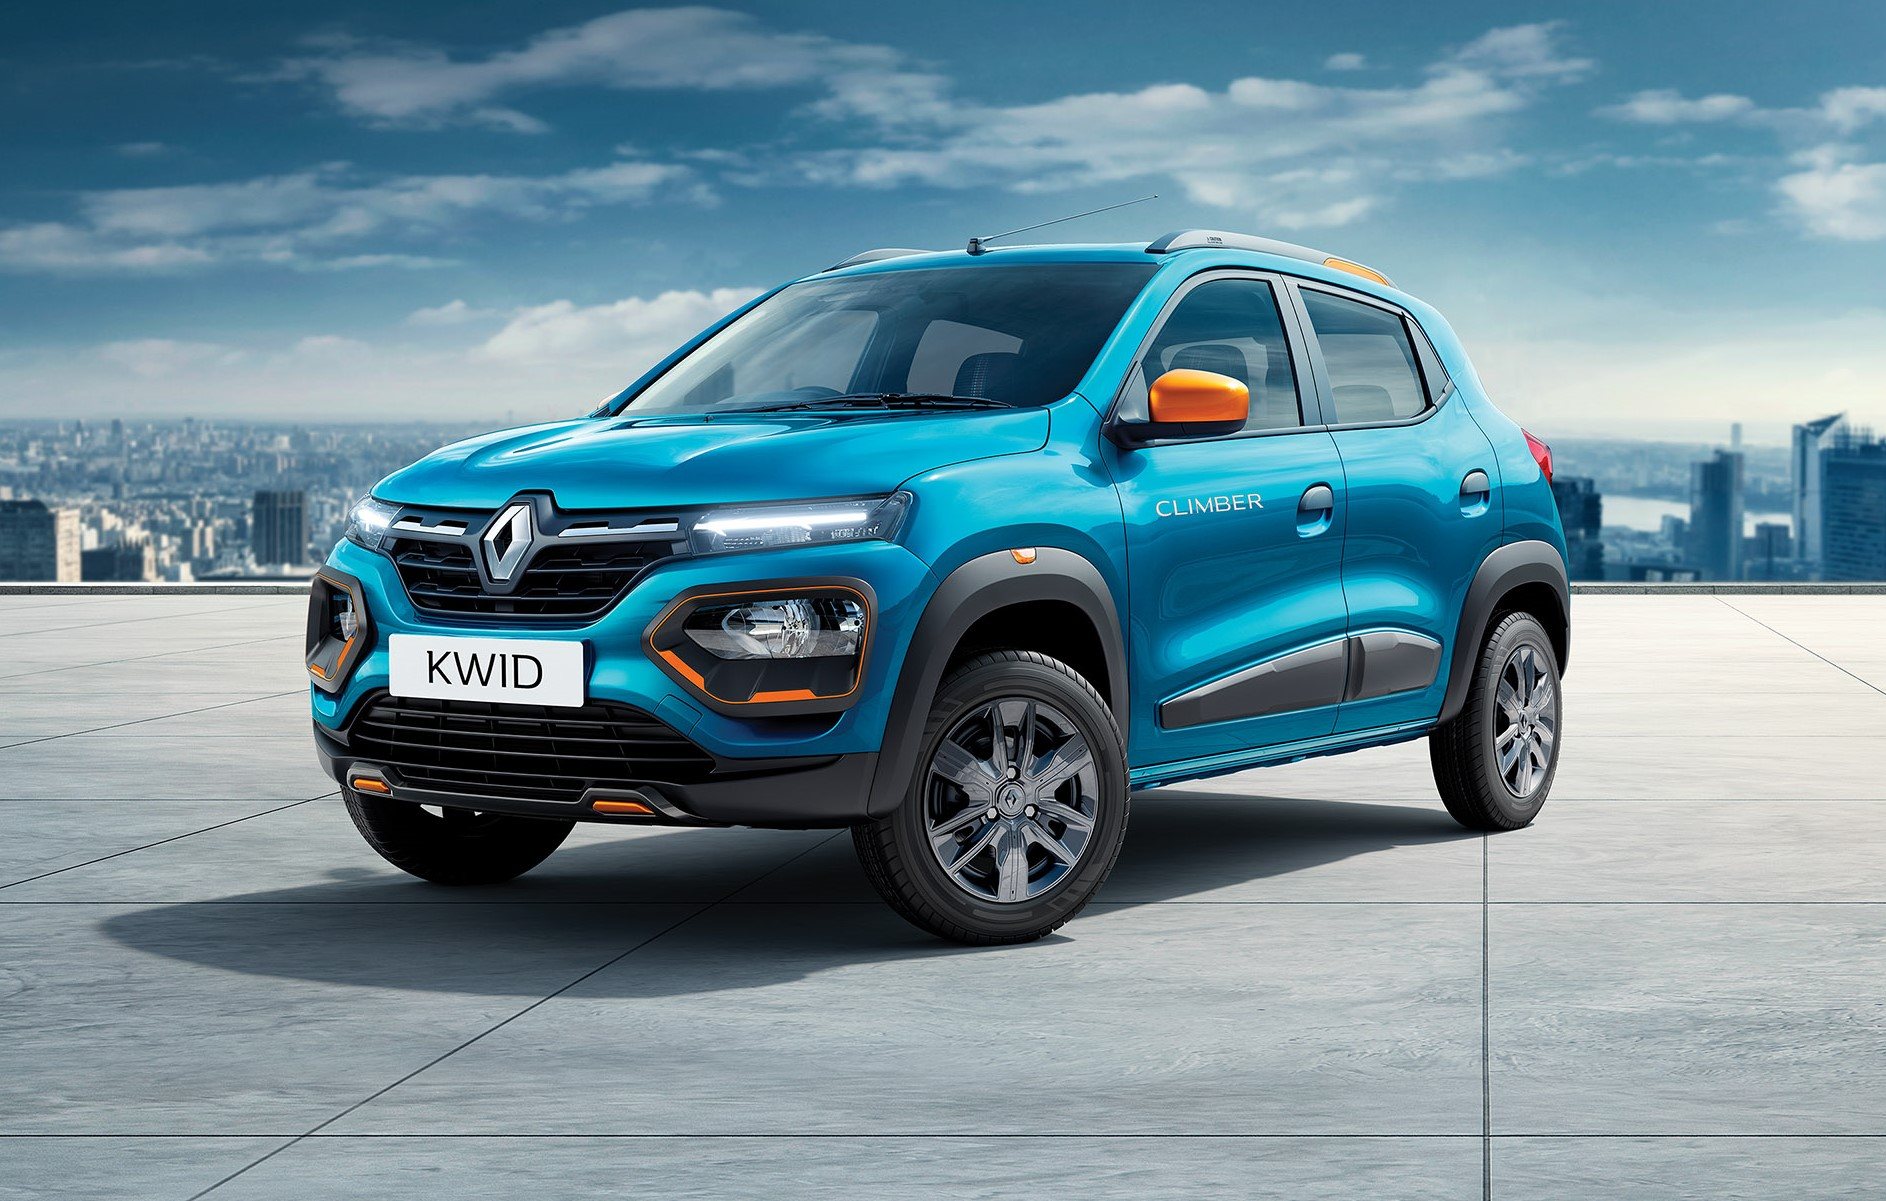 With the New KWID, Renault give itself the means to fulfil its ambitions